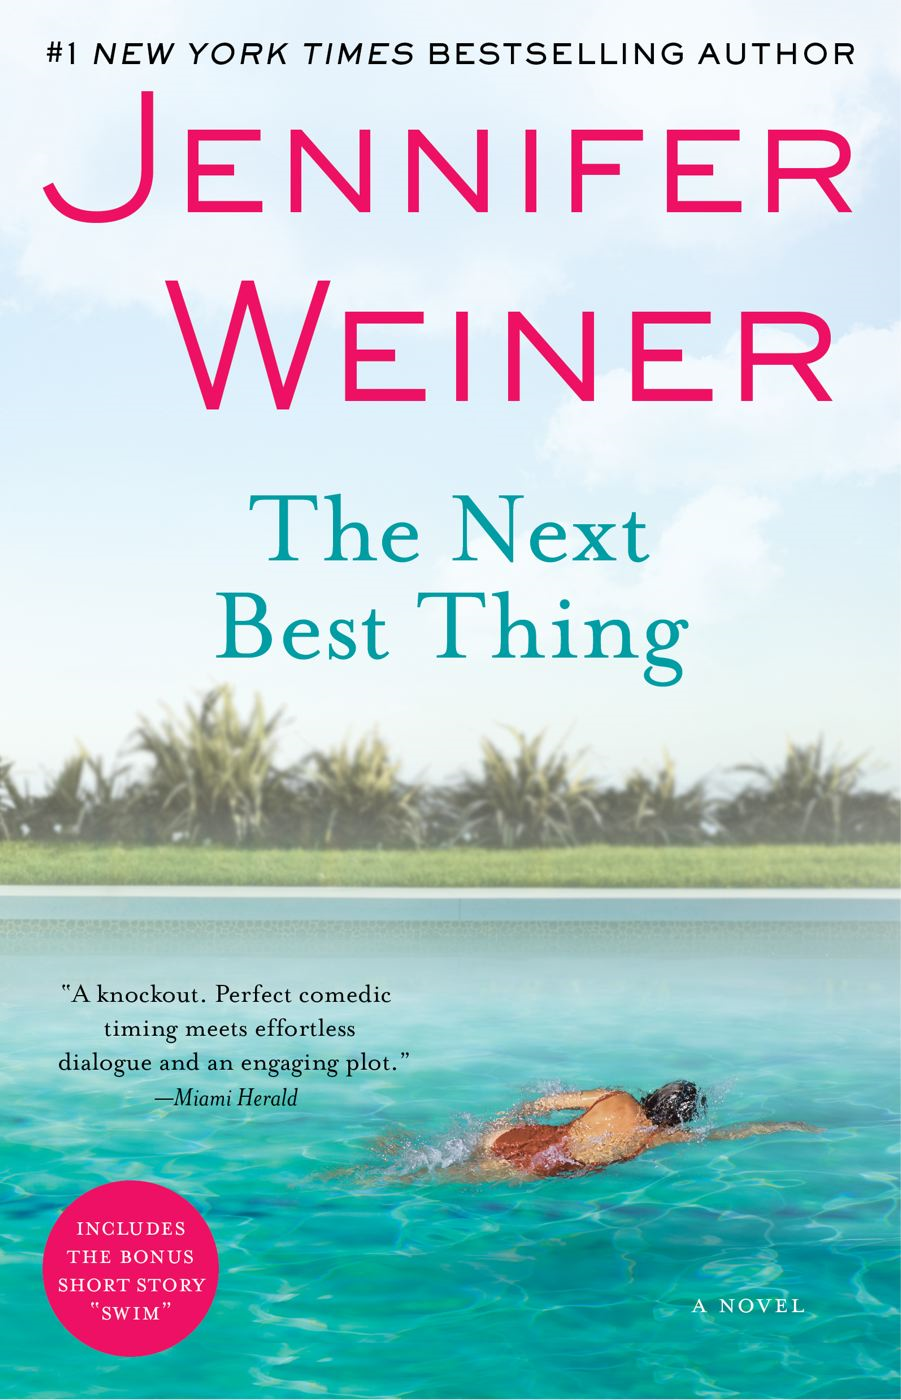 The Next Best Thing: A Novel By: Jennifer Weiner